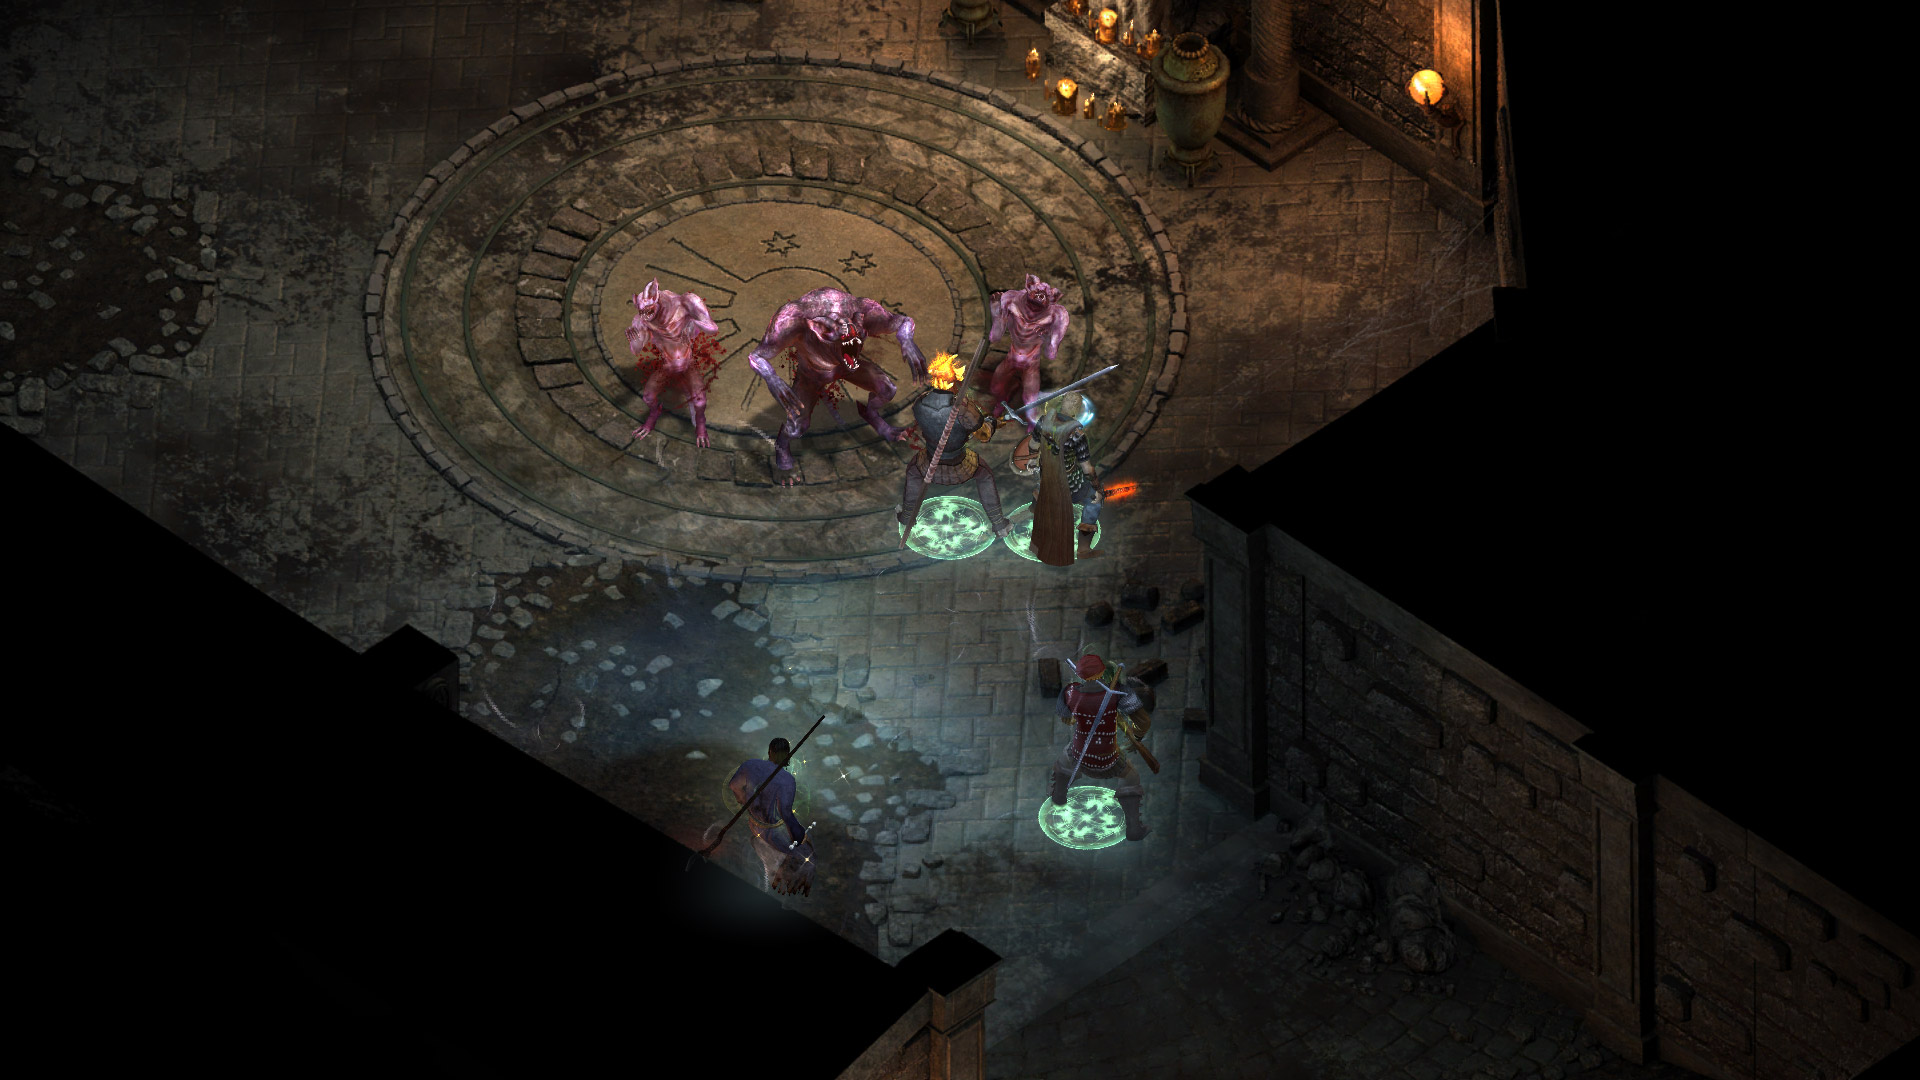 Pillars Of Eternity World Map Complete.5 Tips I Wish I Knew Before Starting Pillars Of Eternity Complete